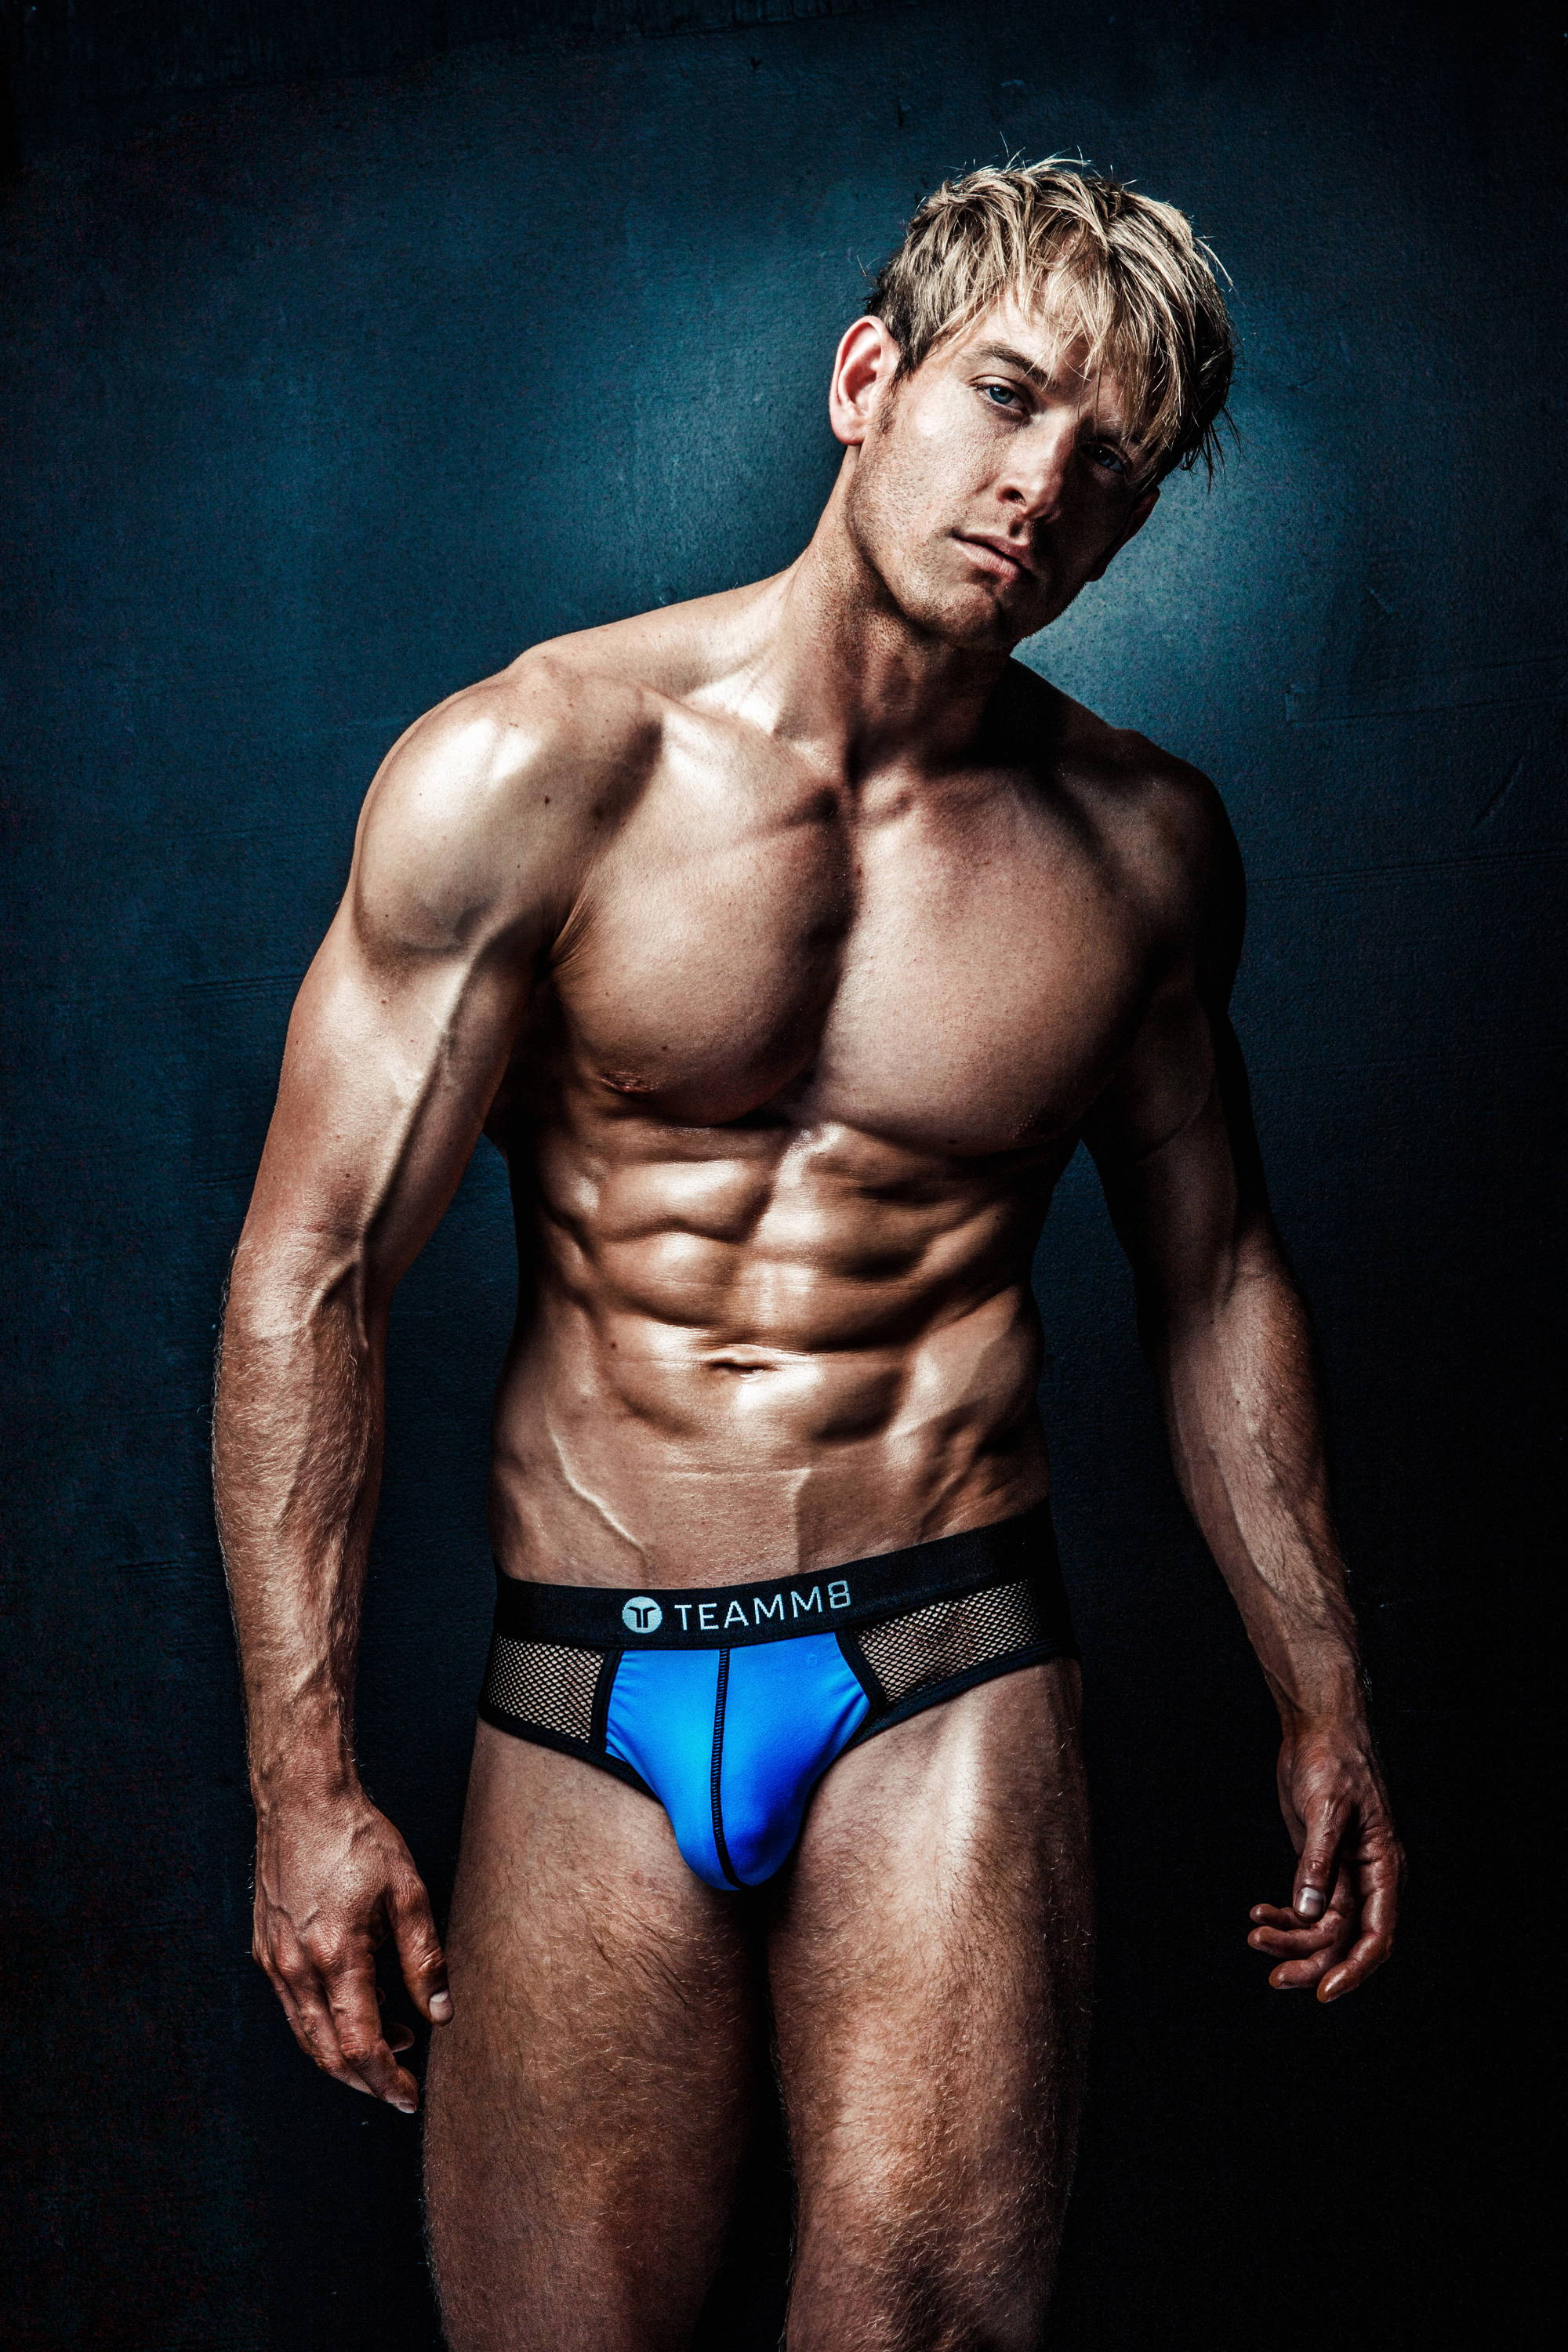 Teamm8 Score Brief - Blue